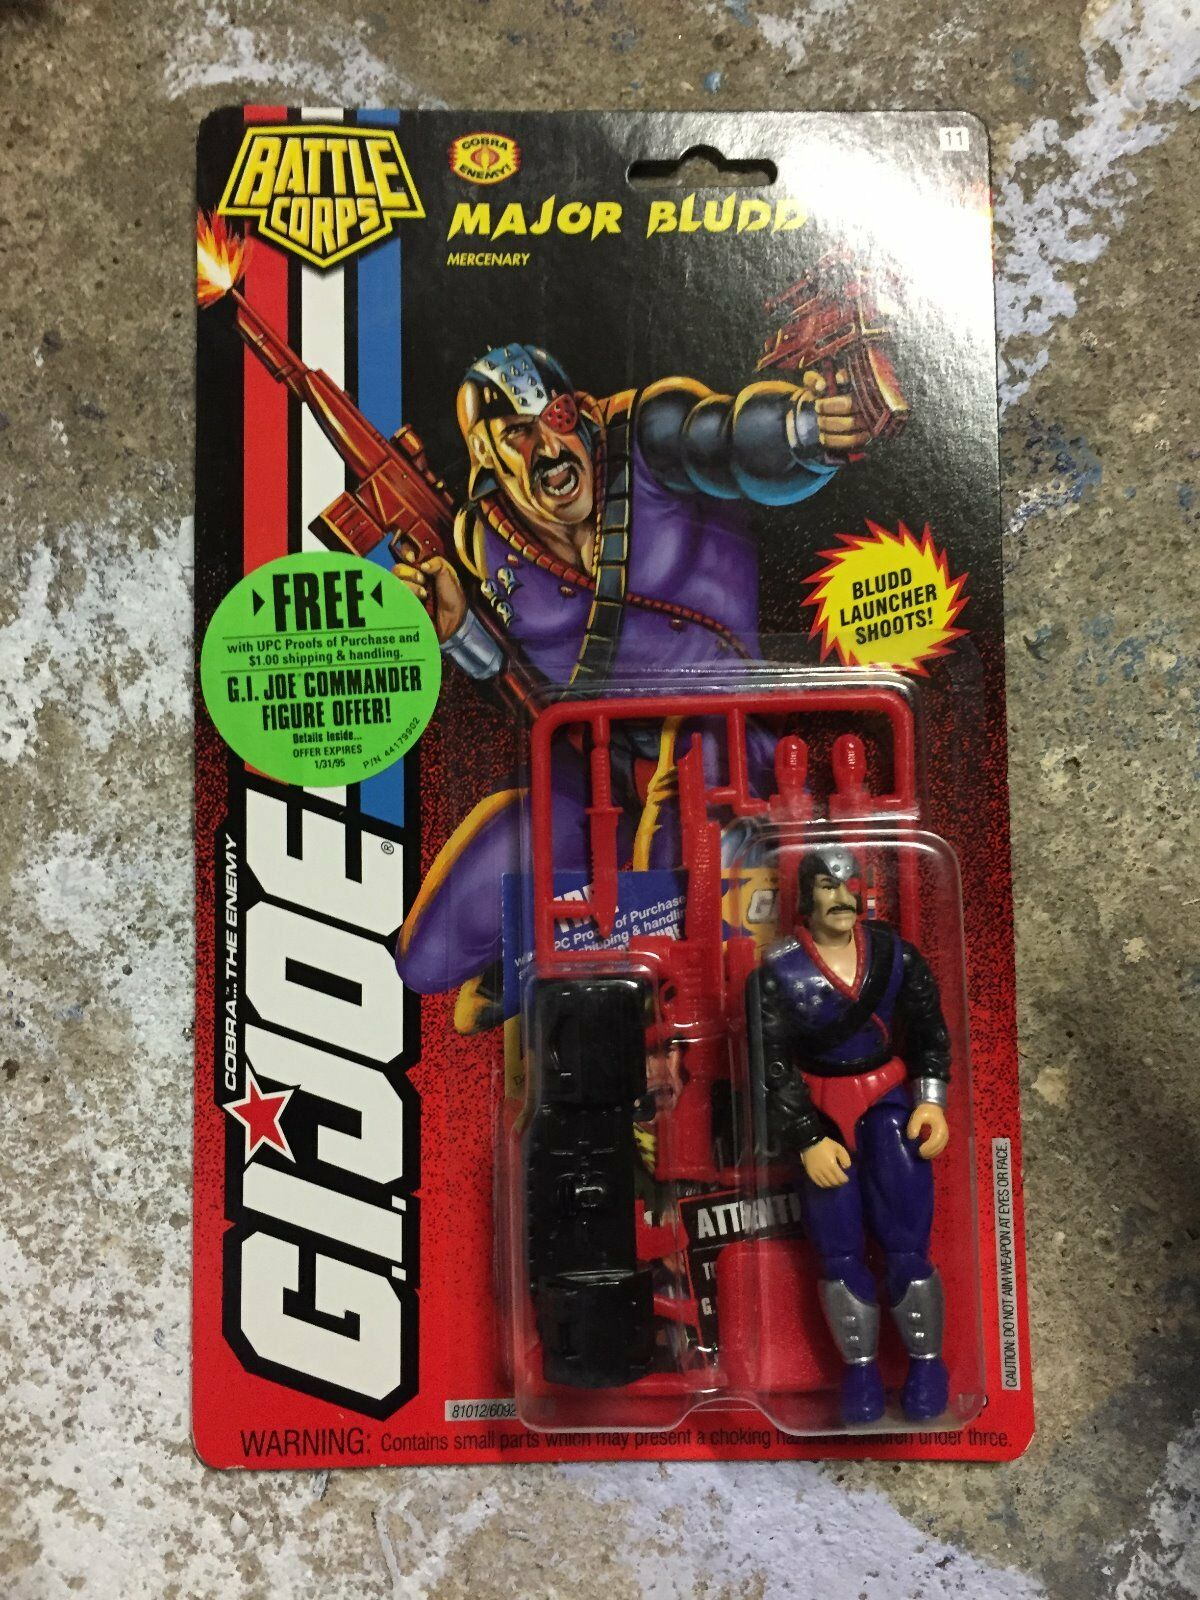 GI GI GI JOE Cobra Major Blaudd New Mint on Card Battle Corps MOC 0d7a2a